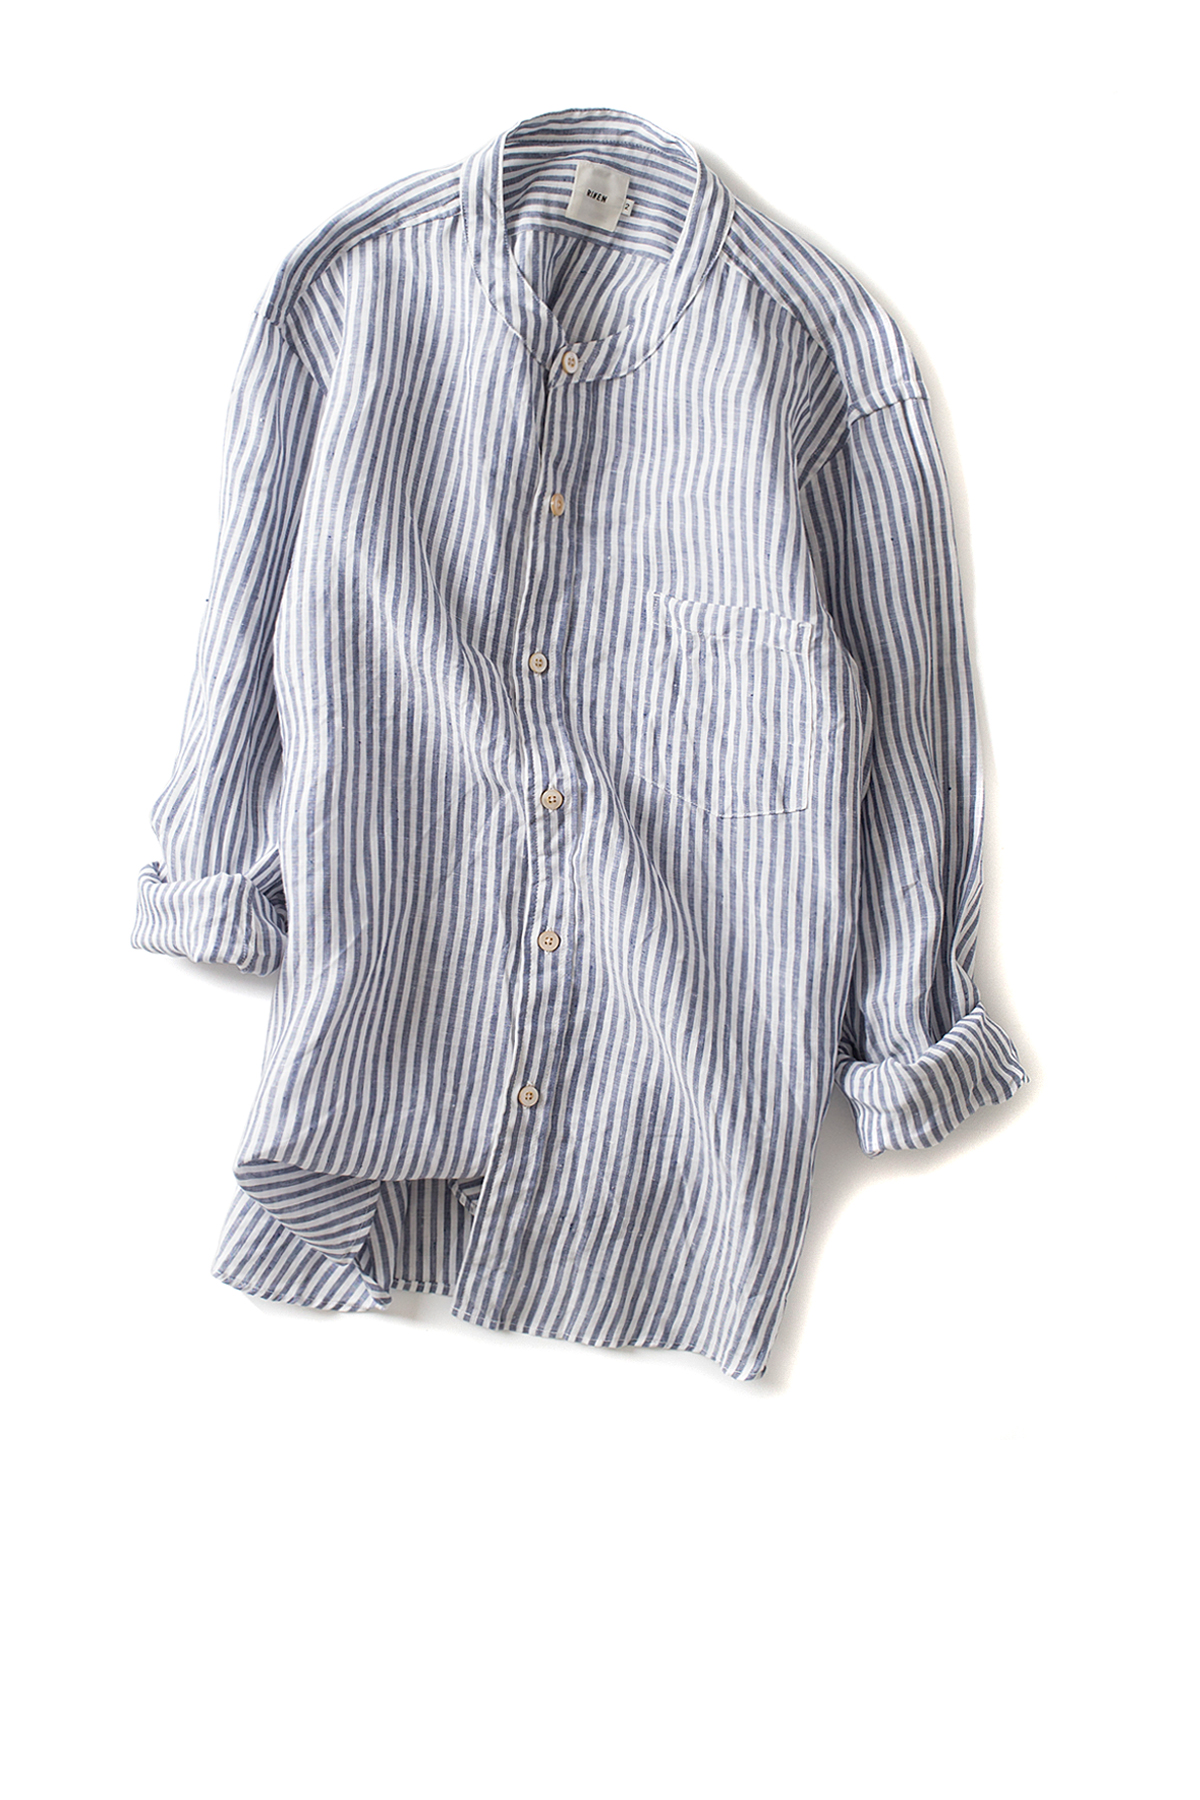 RINEN : Linen Plain Weave Stand Color Shirt (Grey Stripe)